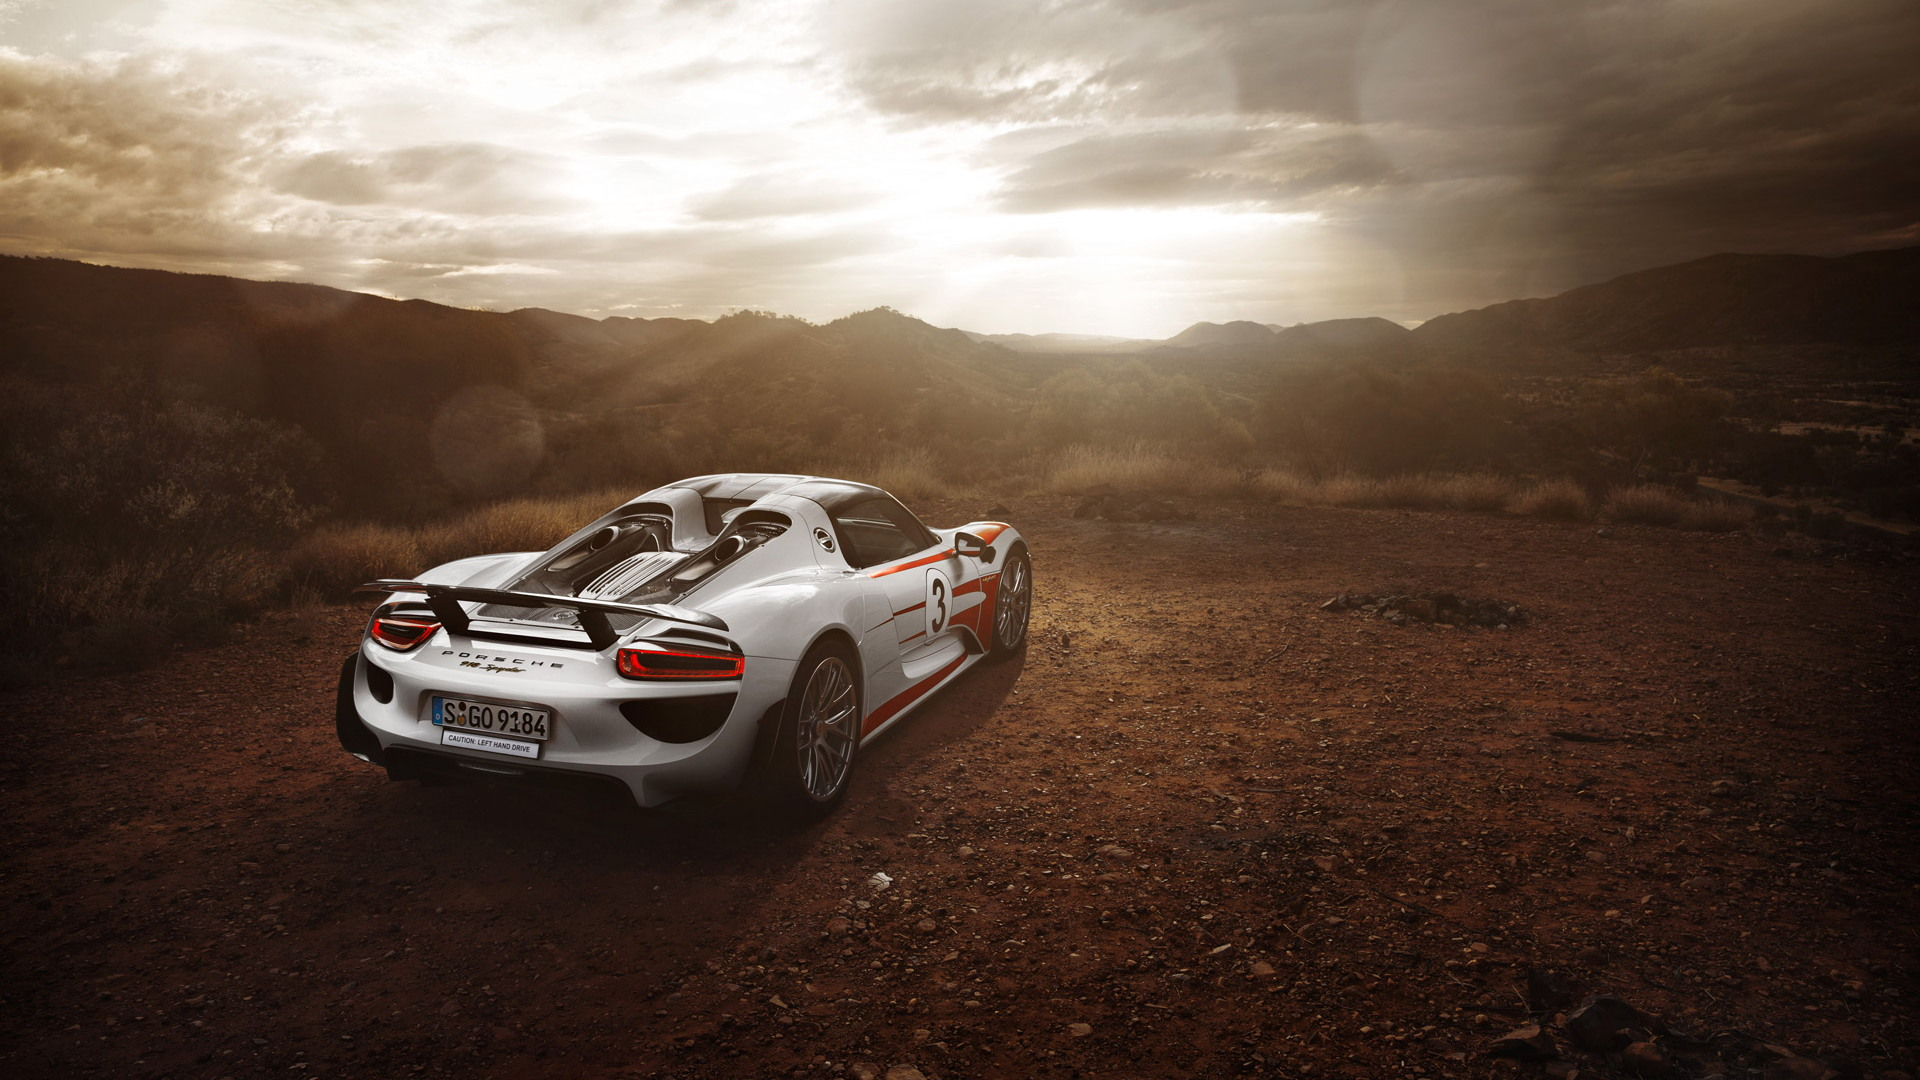 Porsche 918 Spyder in the Australian Outback